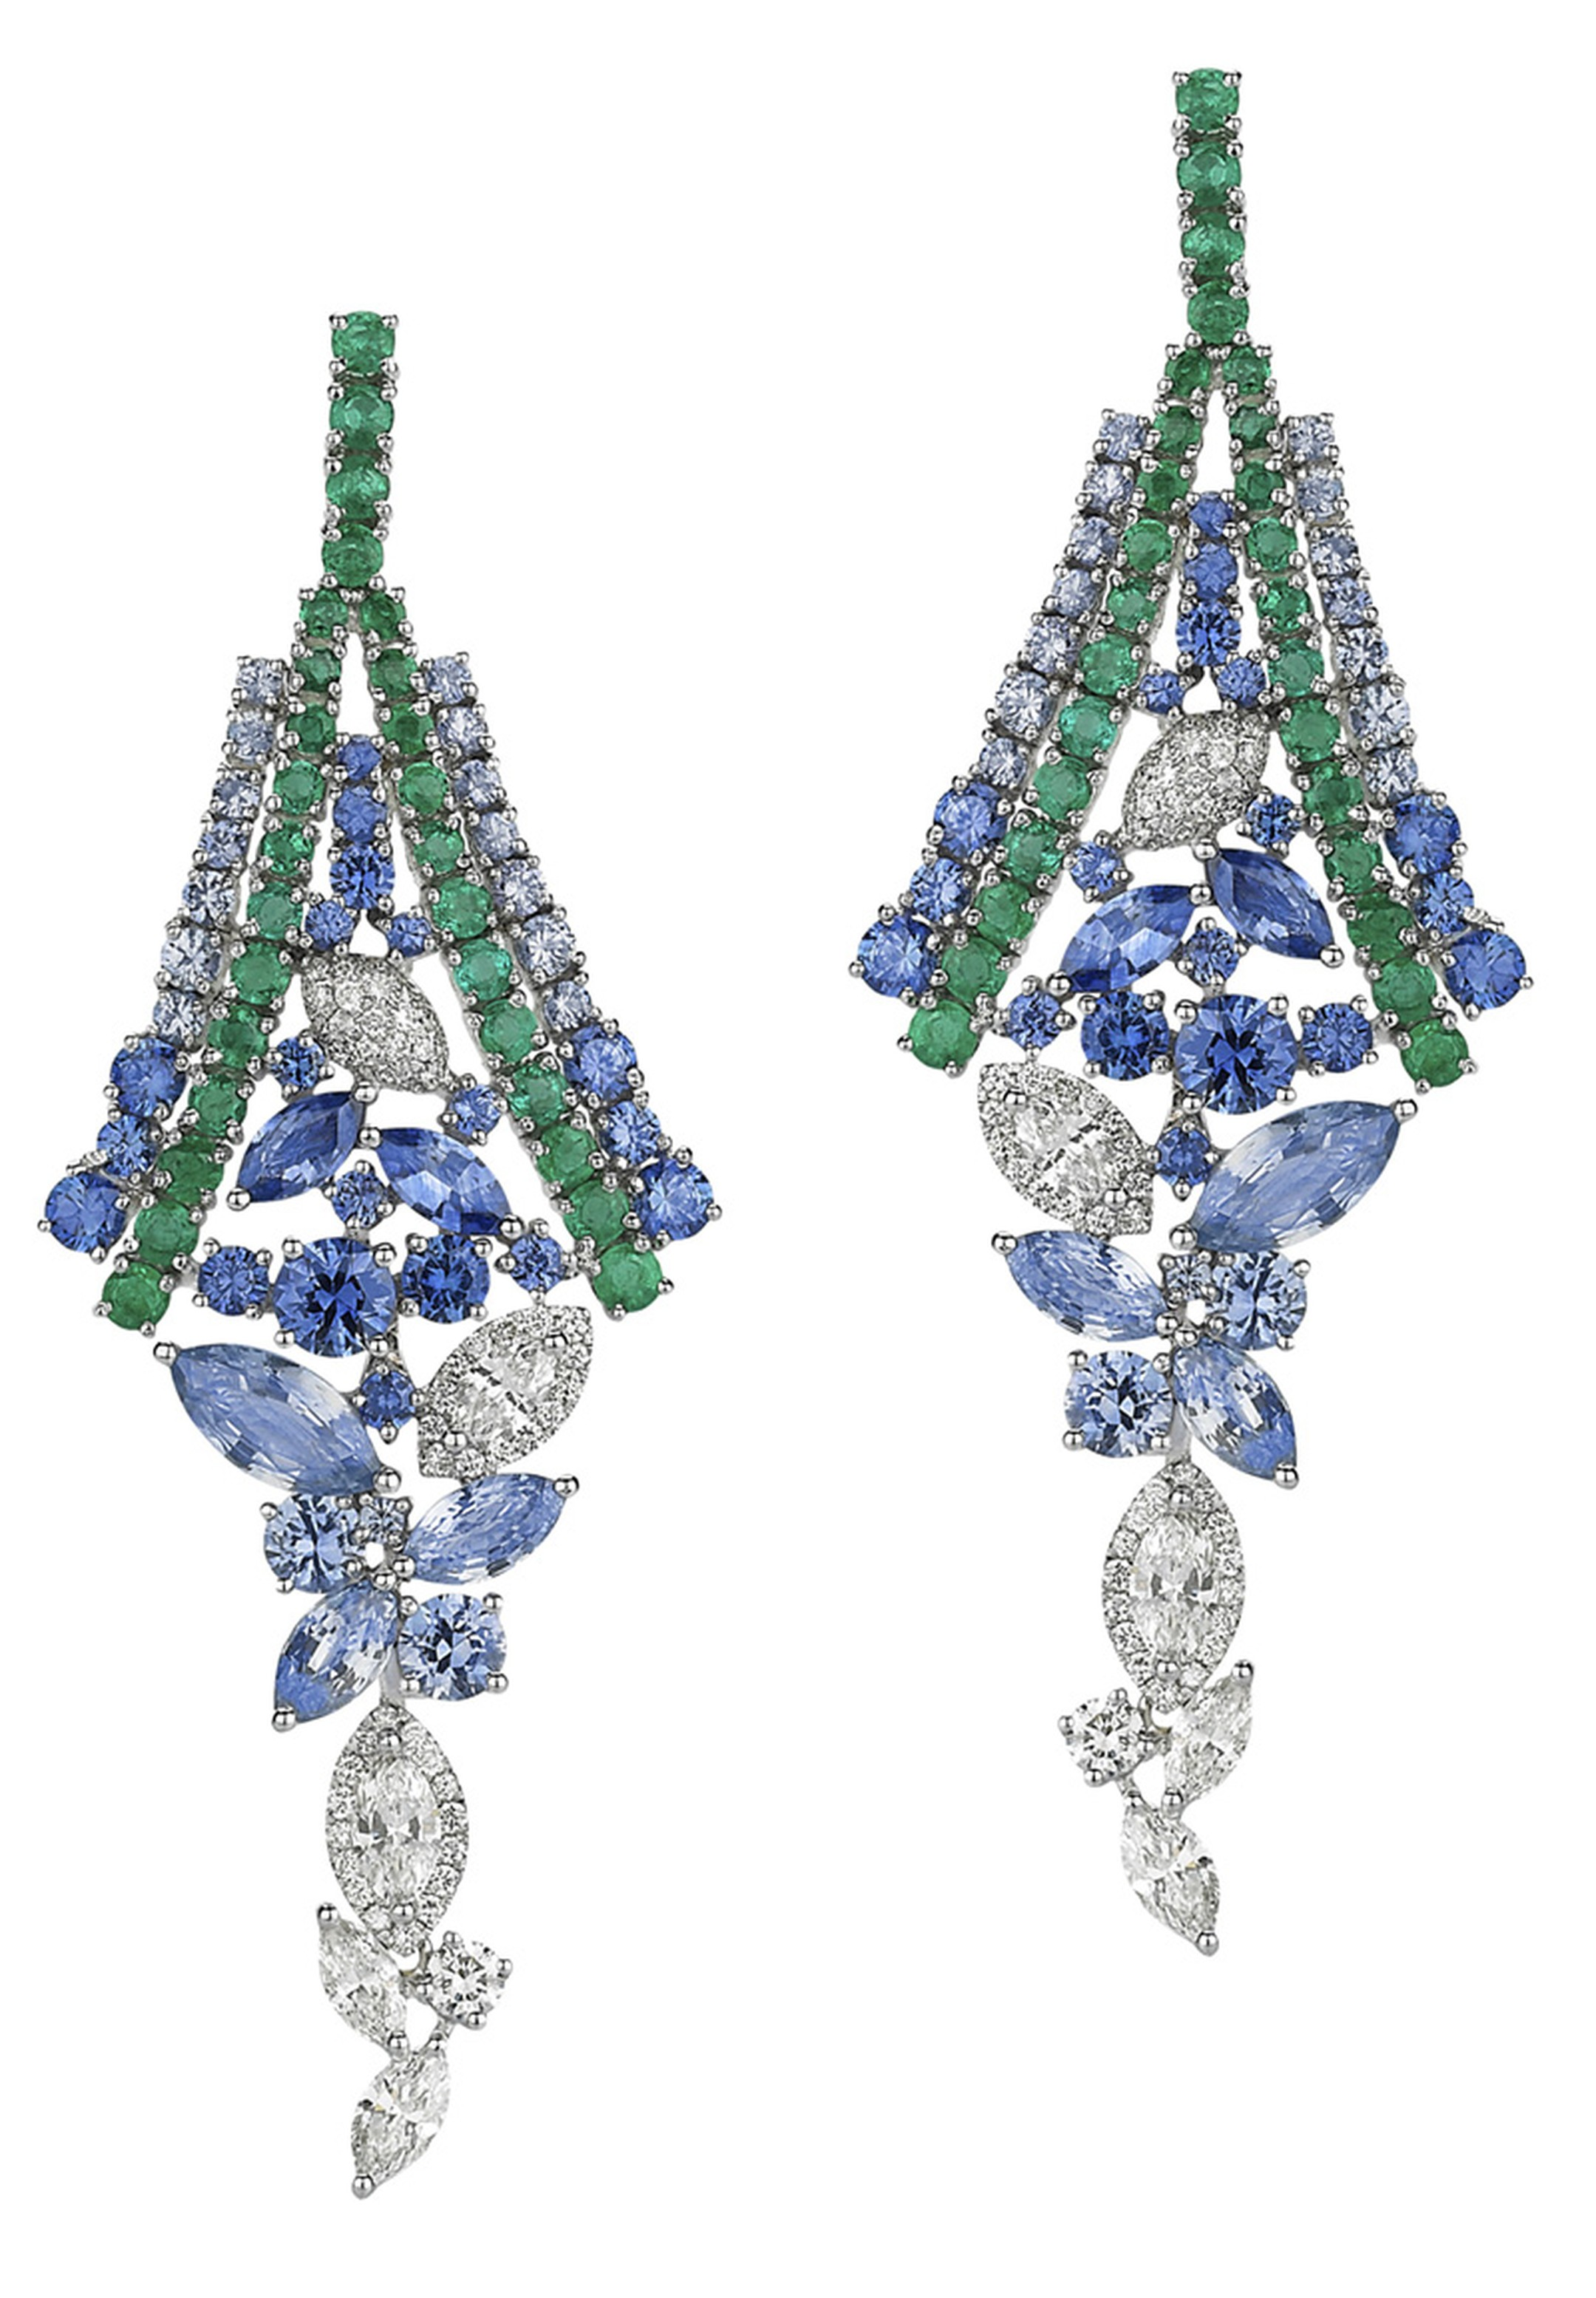 01-Avakian-emerald-and-sapphire-earrings